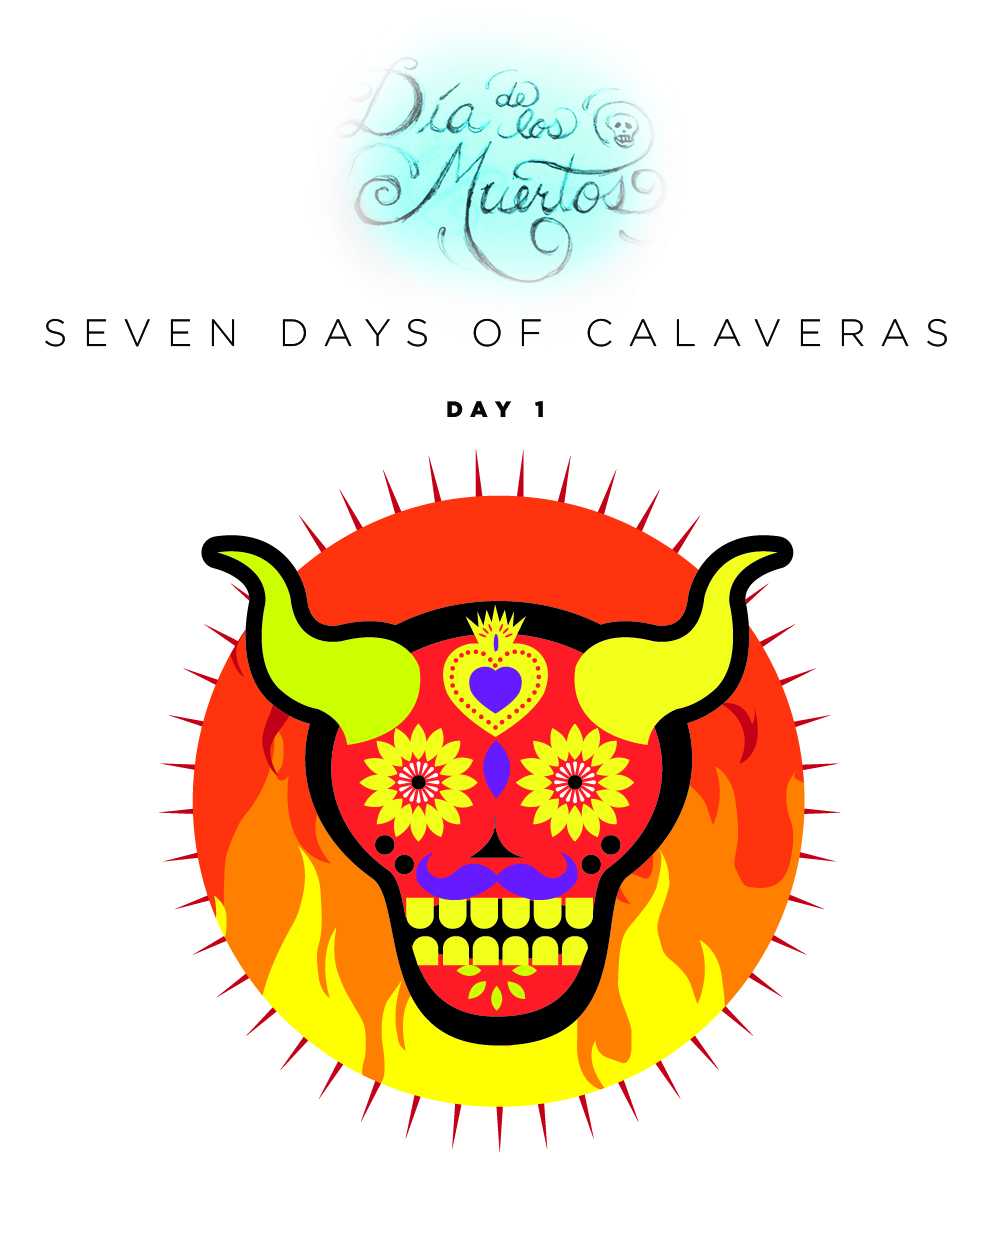 SEVEN days of calaveras day 1